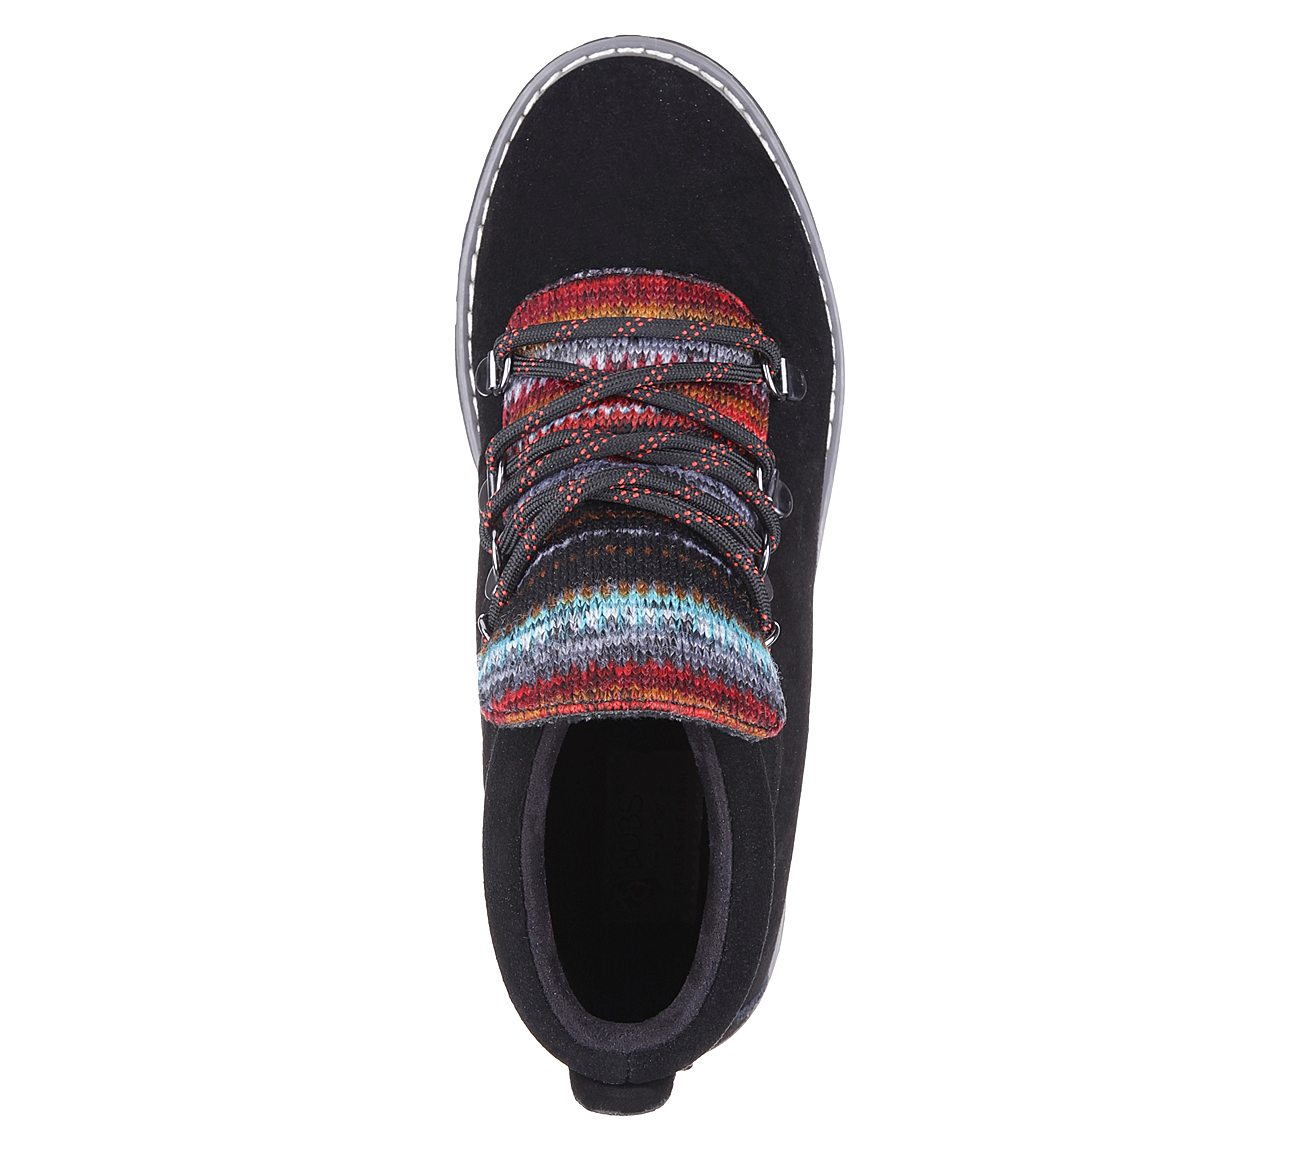 c1498445dc178 Buy SKECHERS BOBS Alpine - Smores BOBS Shoes only $43.40